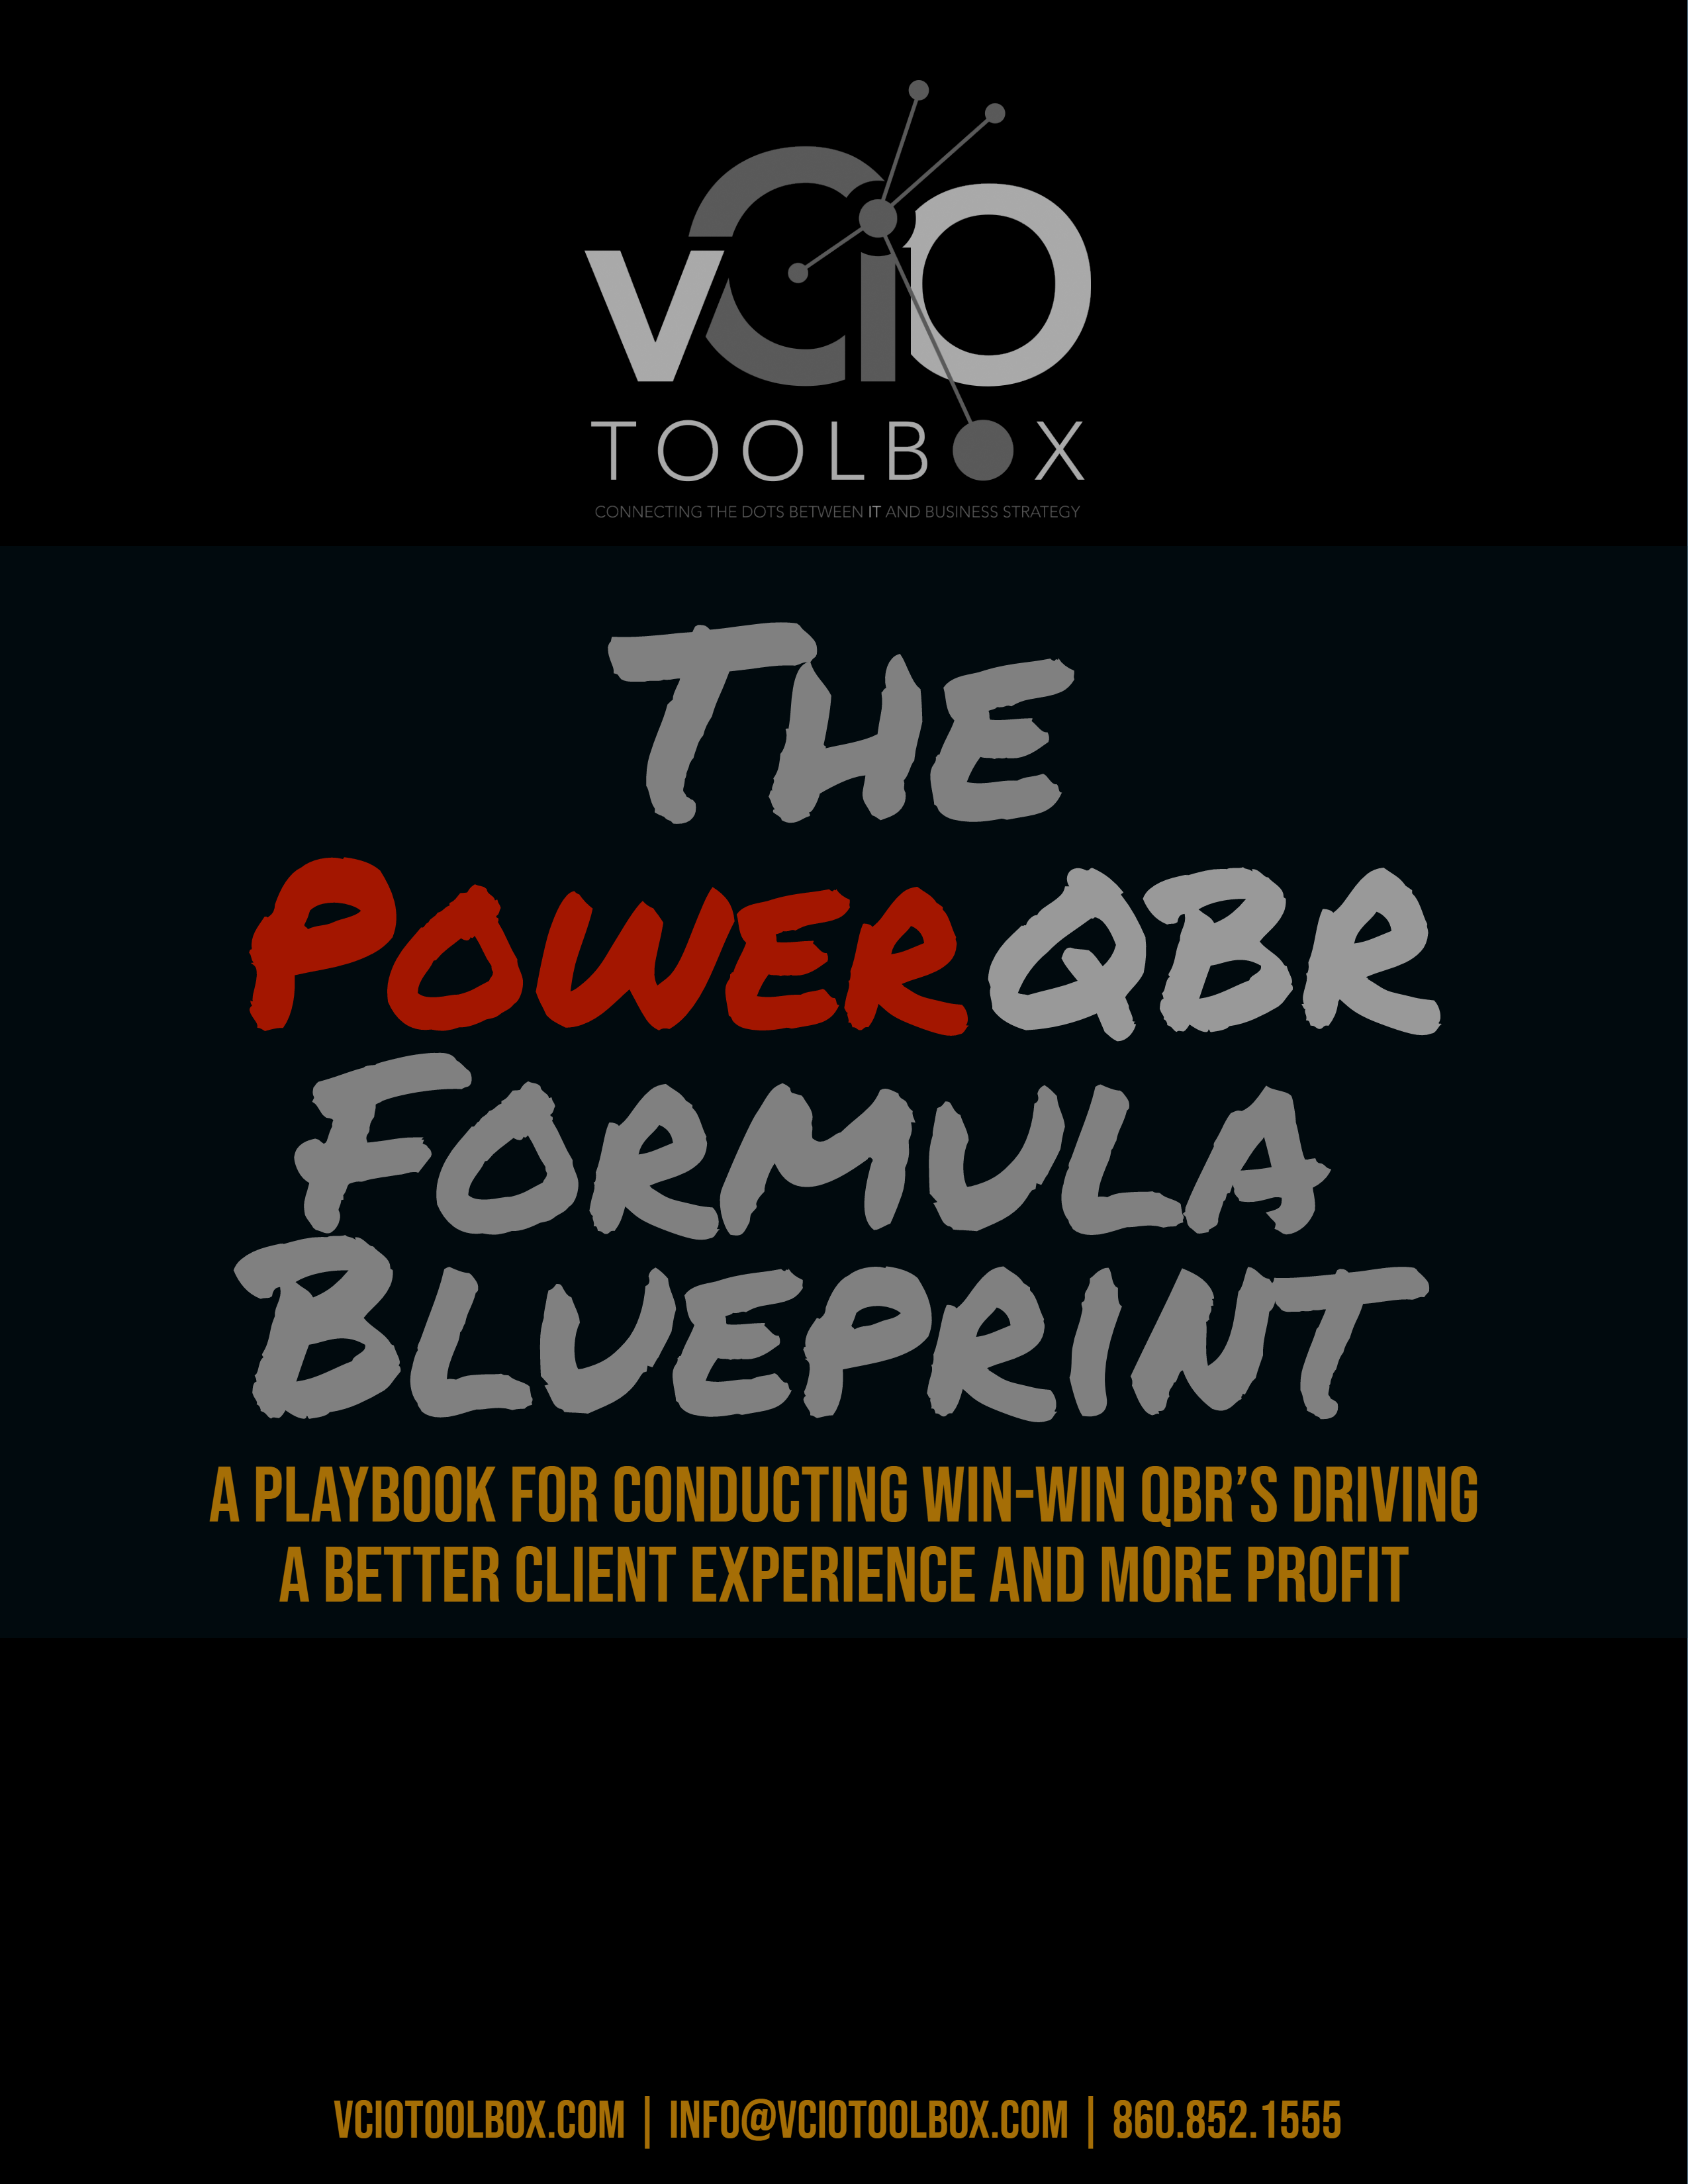 vCIOToolbox PowerQBR